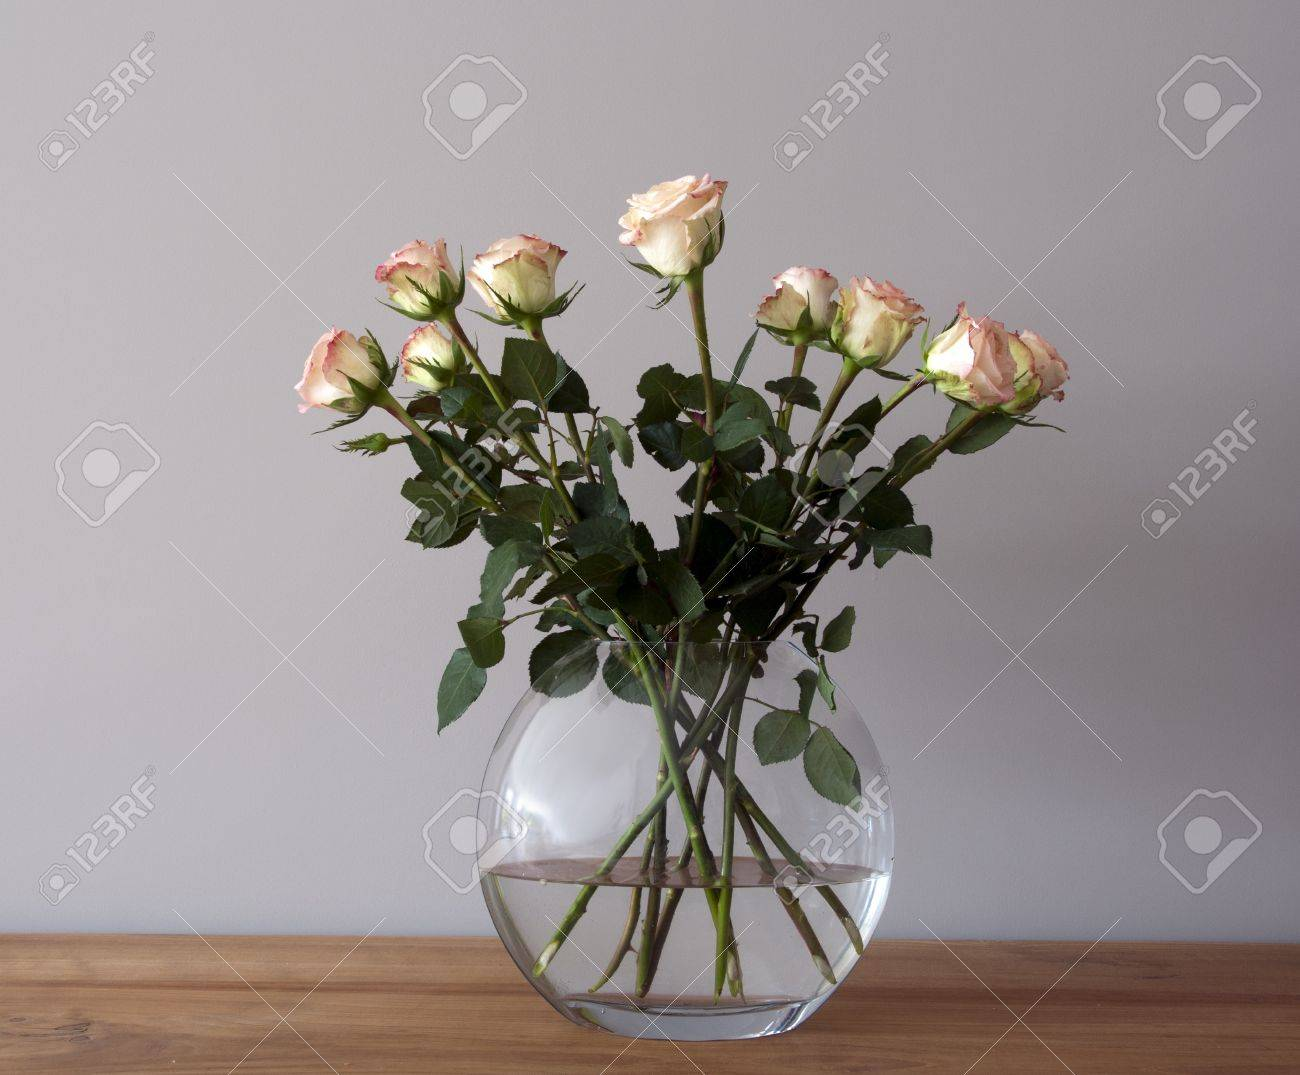 bouquest of roses in a vase on wooden table - 13306880